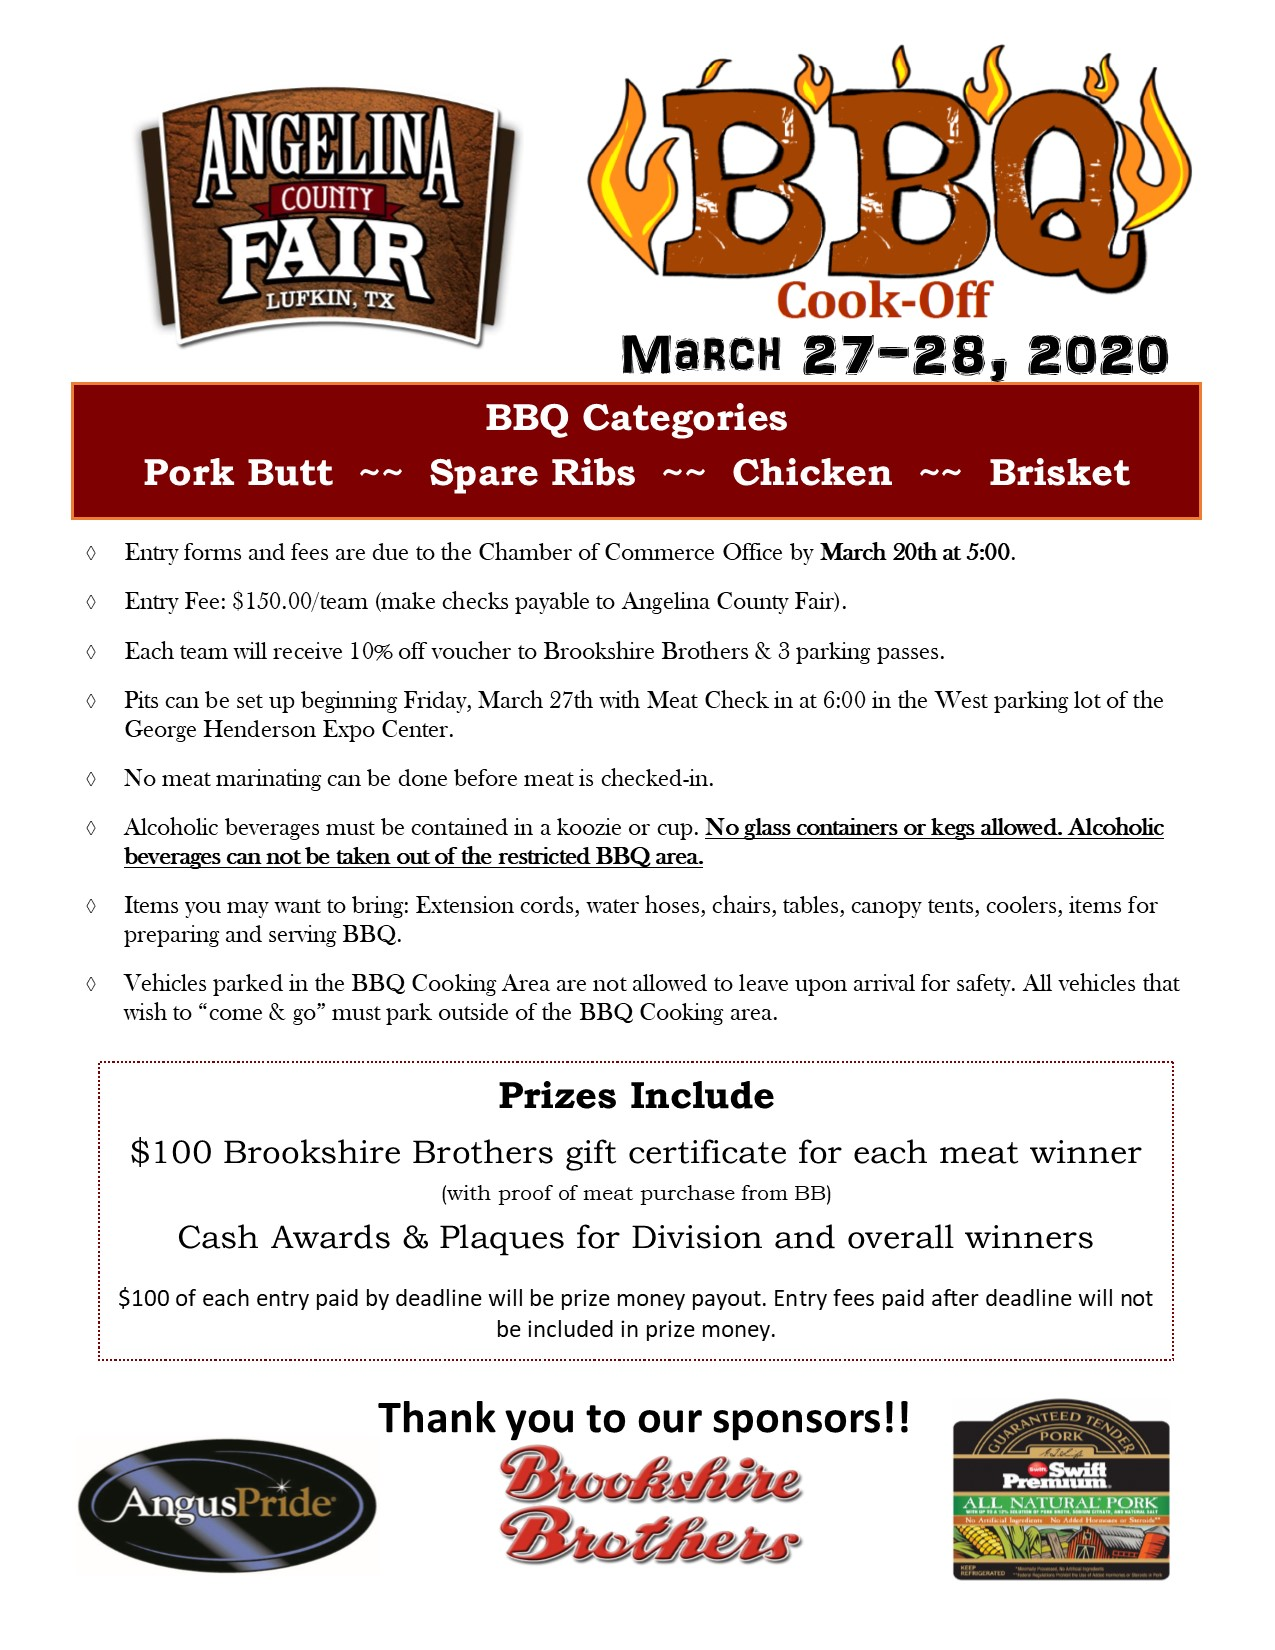 BBQ cookoff registration